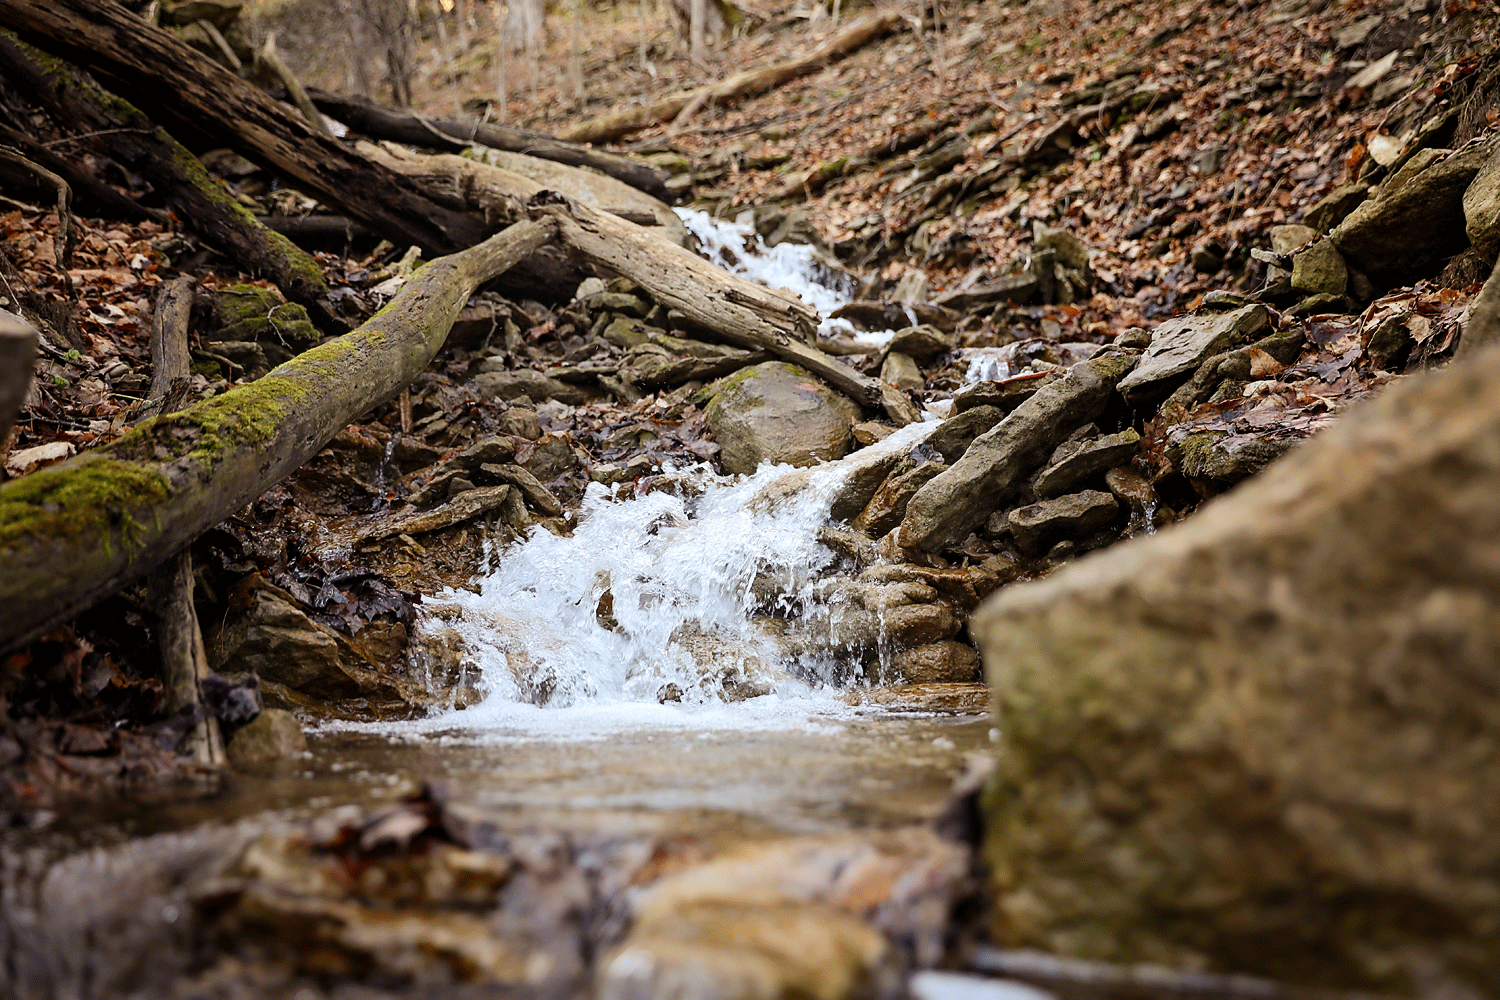 water features - The 14 acre hardwood forest located at the very back of our property is an undisturbed escape into nature. Teaming with streams, it is heaven to your ears. If you are nimble and bring the right shoes, a 30-45 minute hike (not for beginners) features a spectacular 40' waterfall.